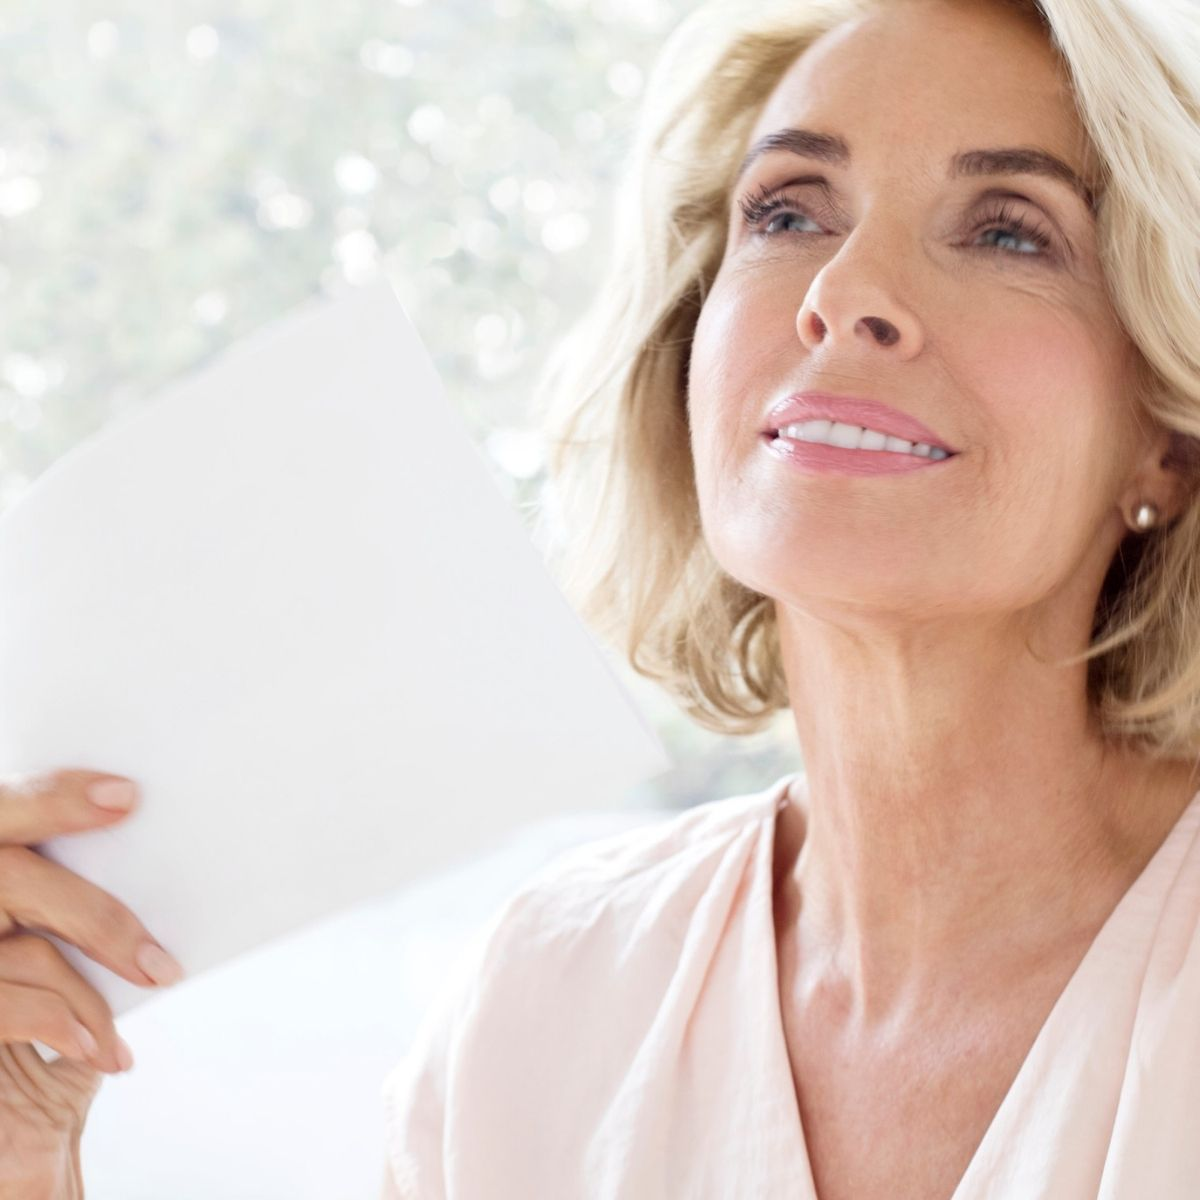 Dryness is a hallmark sign of menopause. With this condition, the skin become thinner and more easily irritated, often becoming painful. Intense hydration is key here!